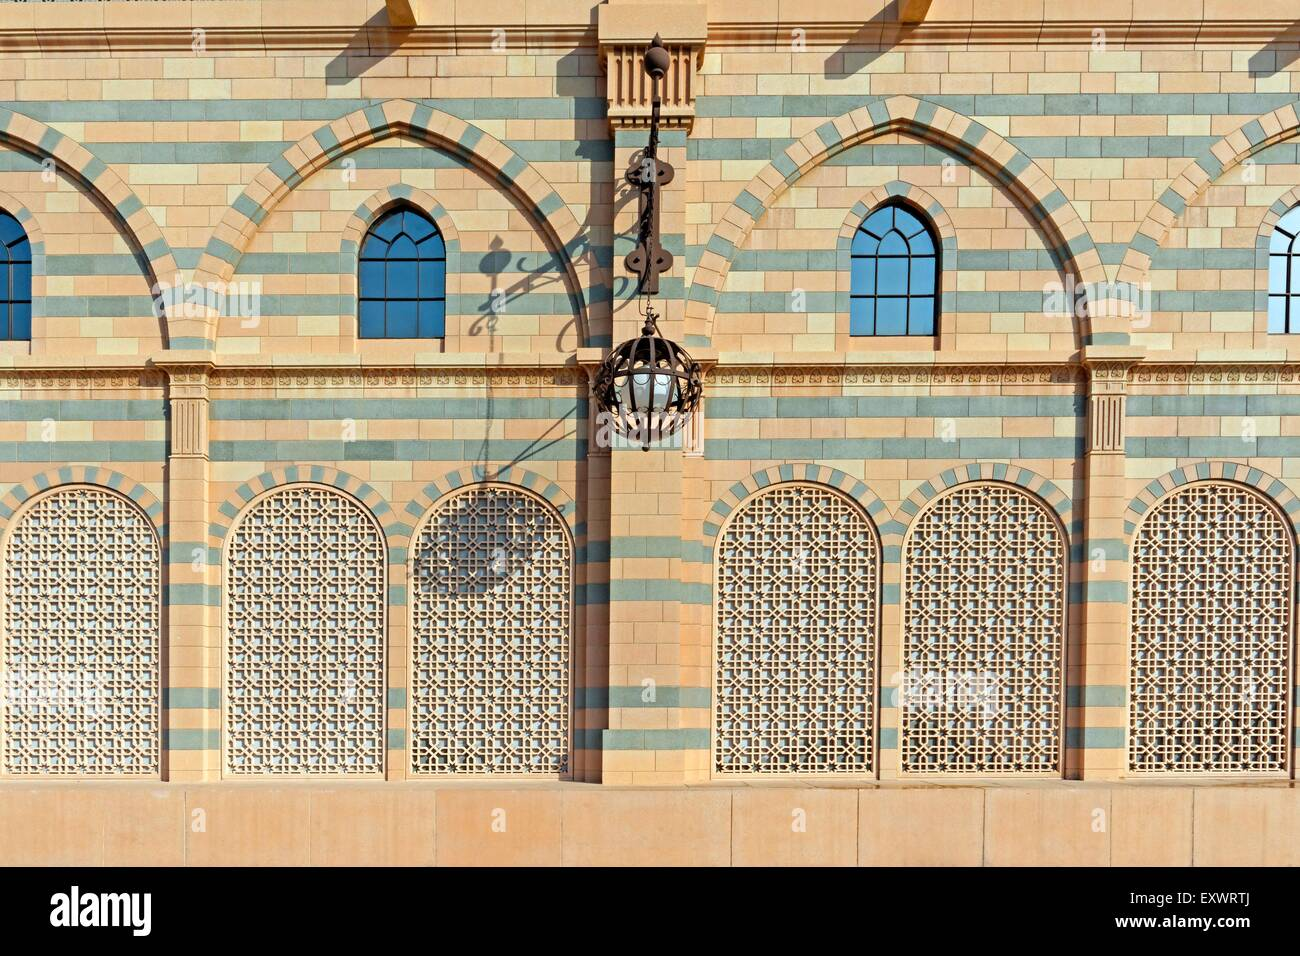 Front of the Sharjah Museum, Dubai - Stock Image